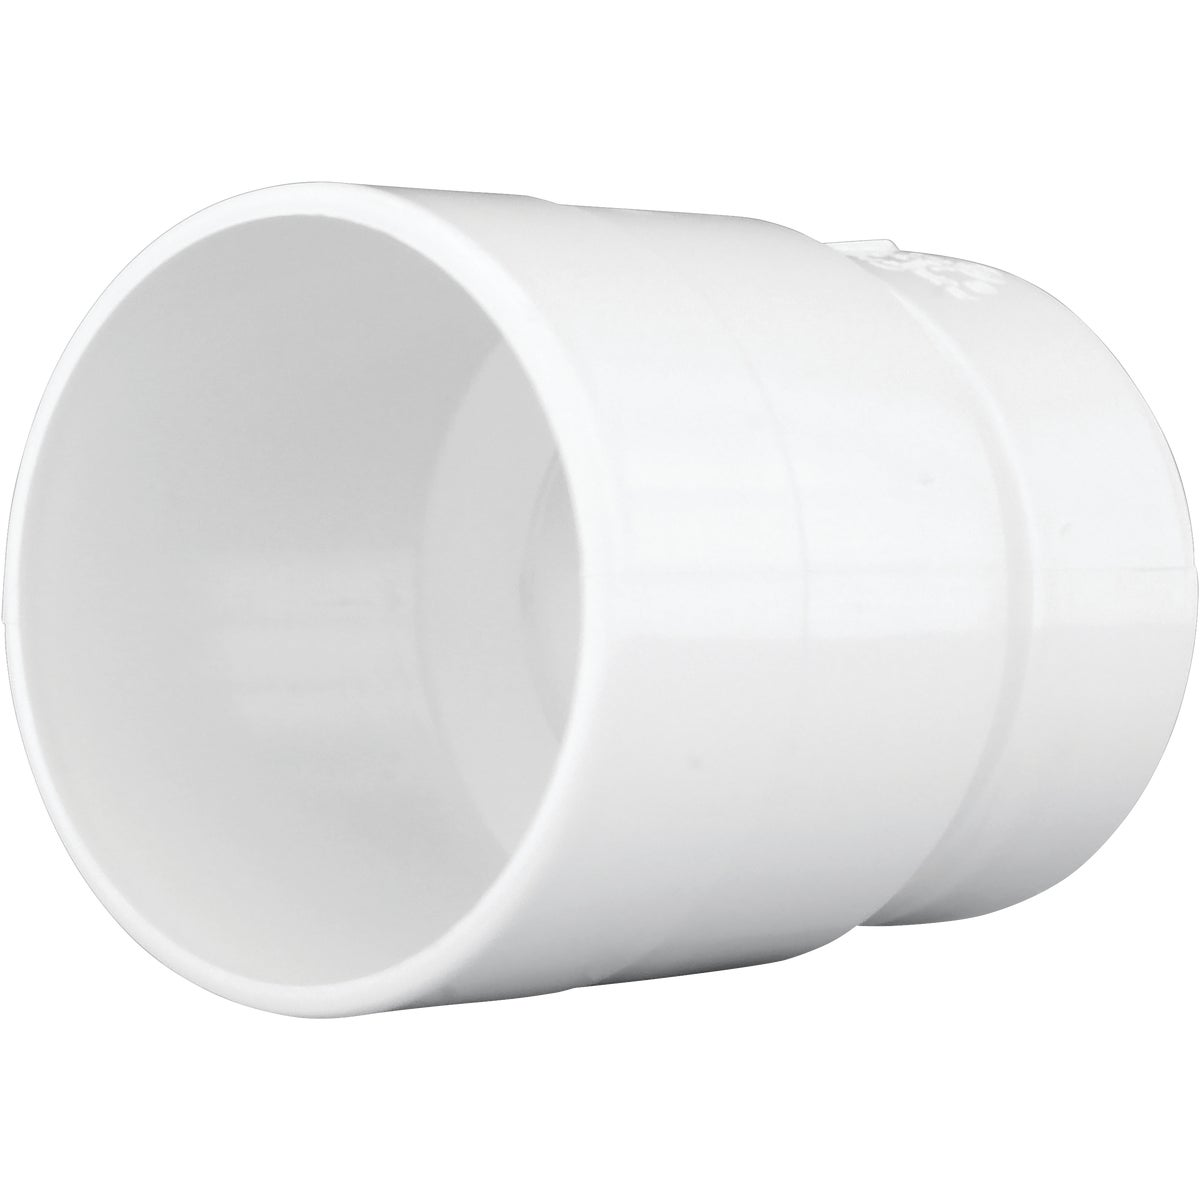 4X3 PVC-DWV HUB ADAPTER - 70543 by Genova Inc  Pvc Dwv